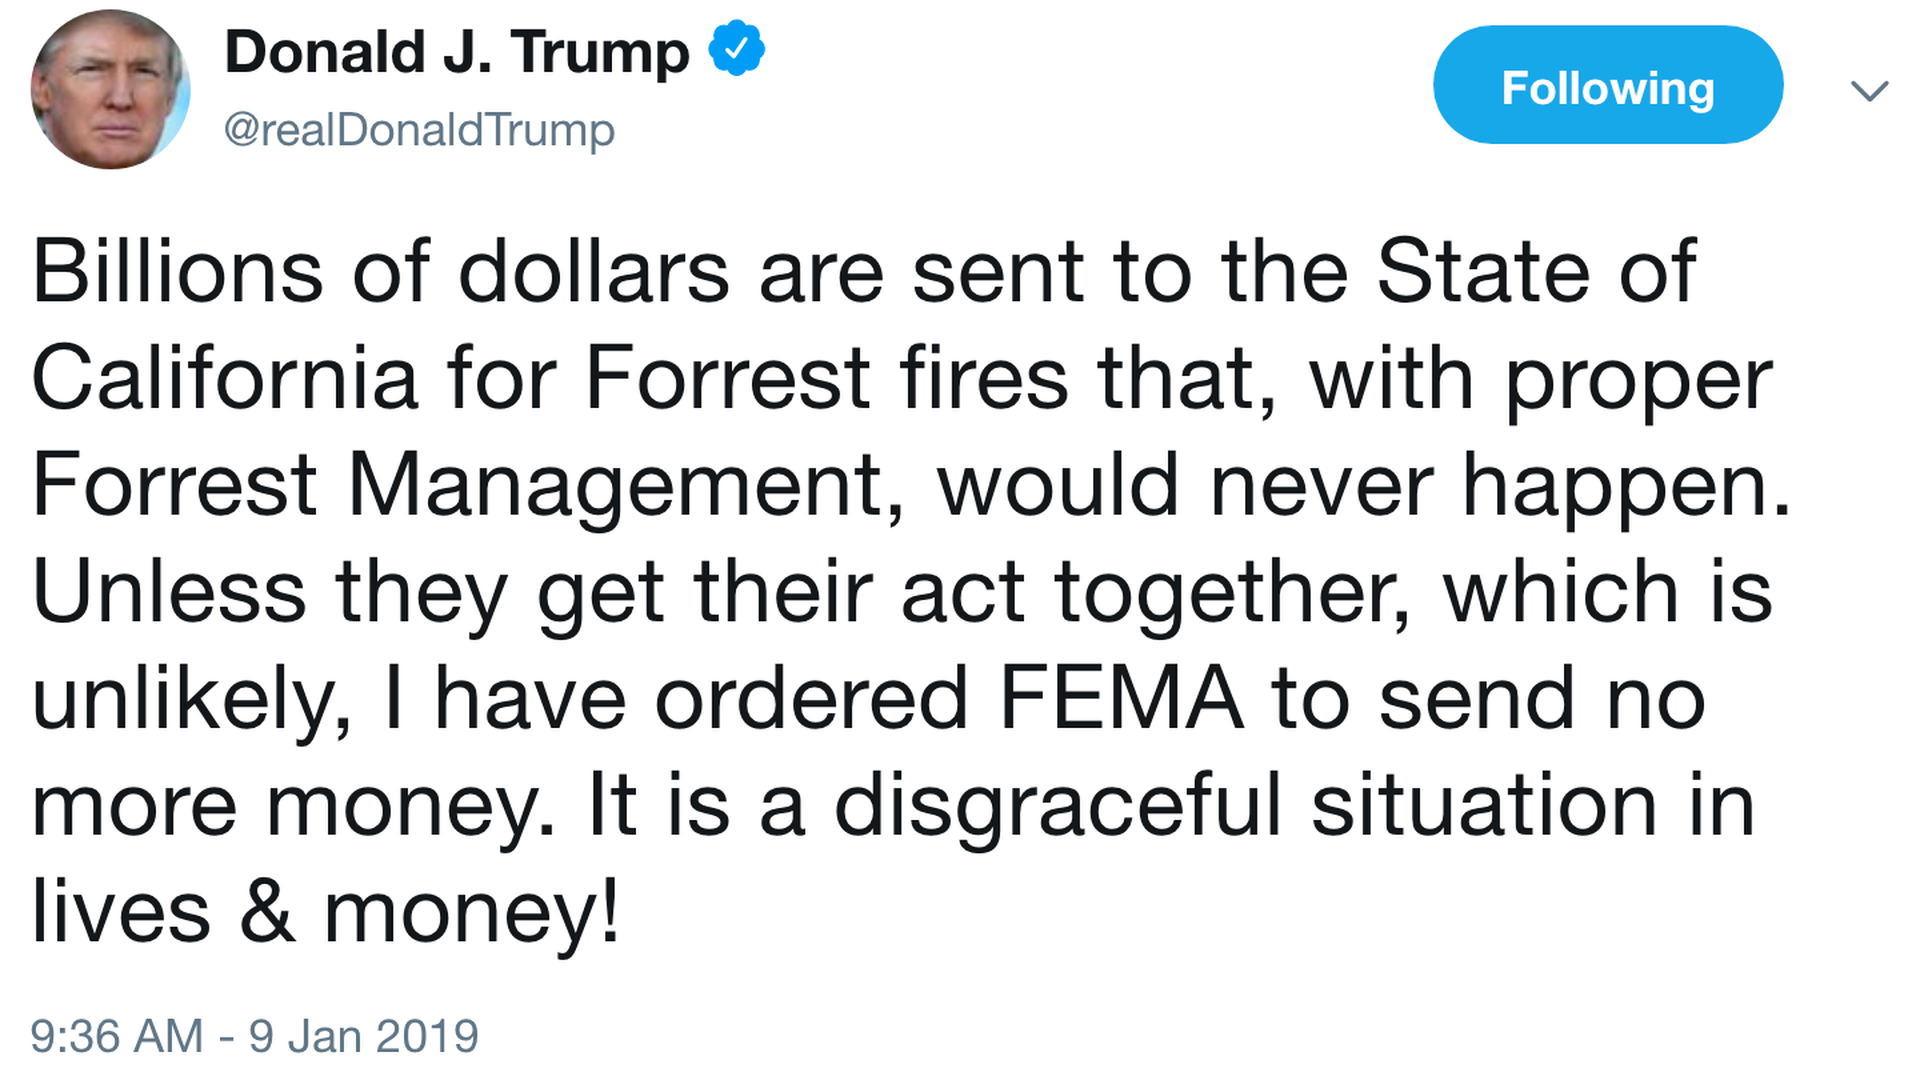 Blaming California's forest management, Trump threatens to end FEMA funds for state's wildfires